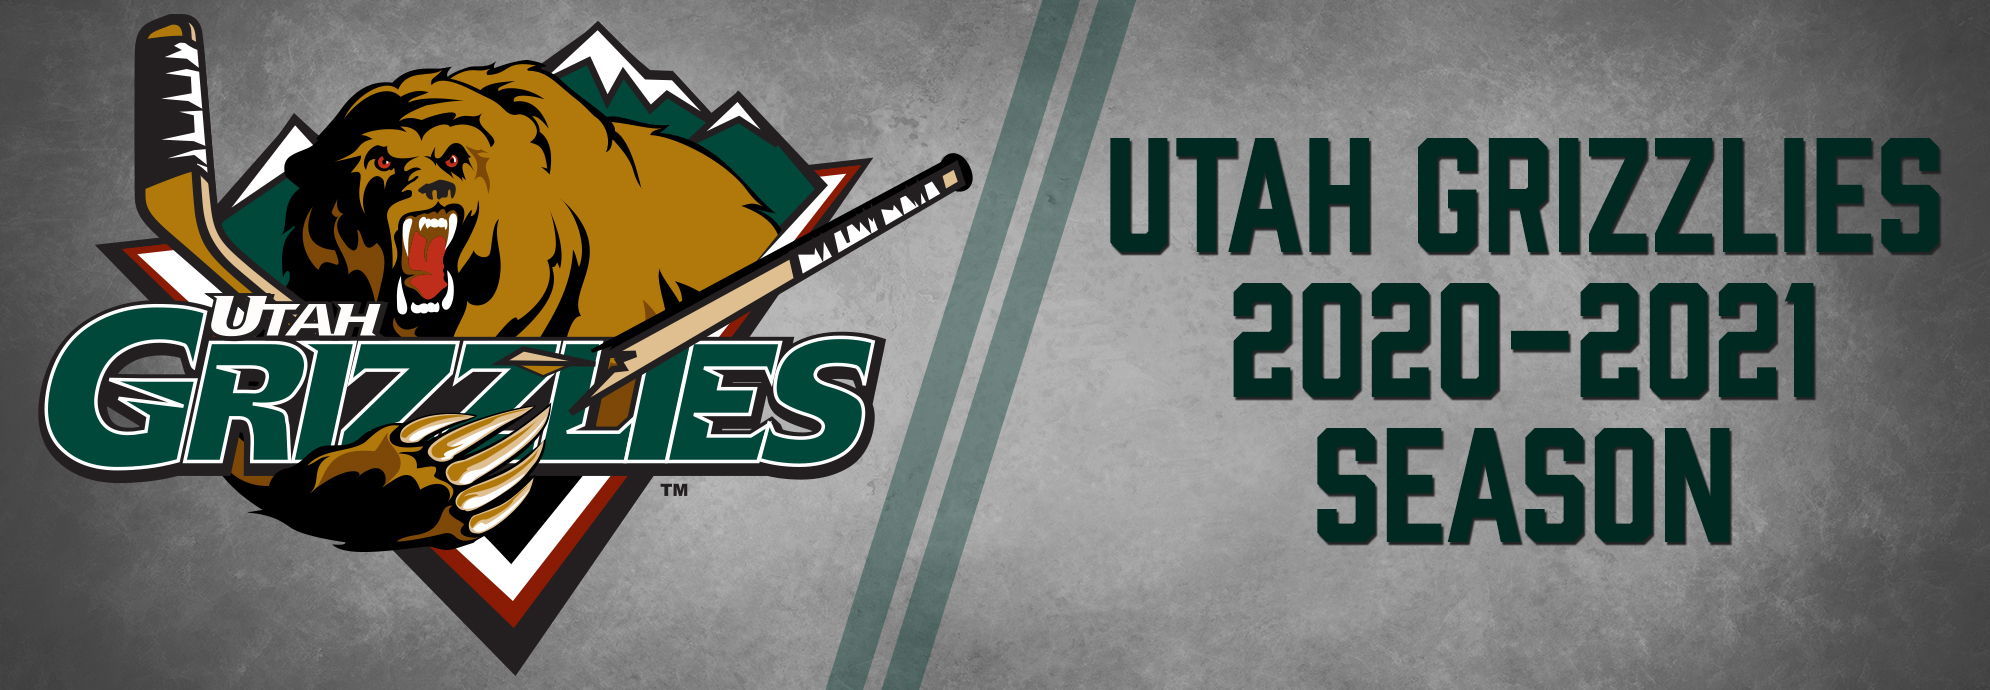 Utah Grizzlies Hockey 2020-2021 Season